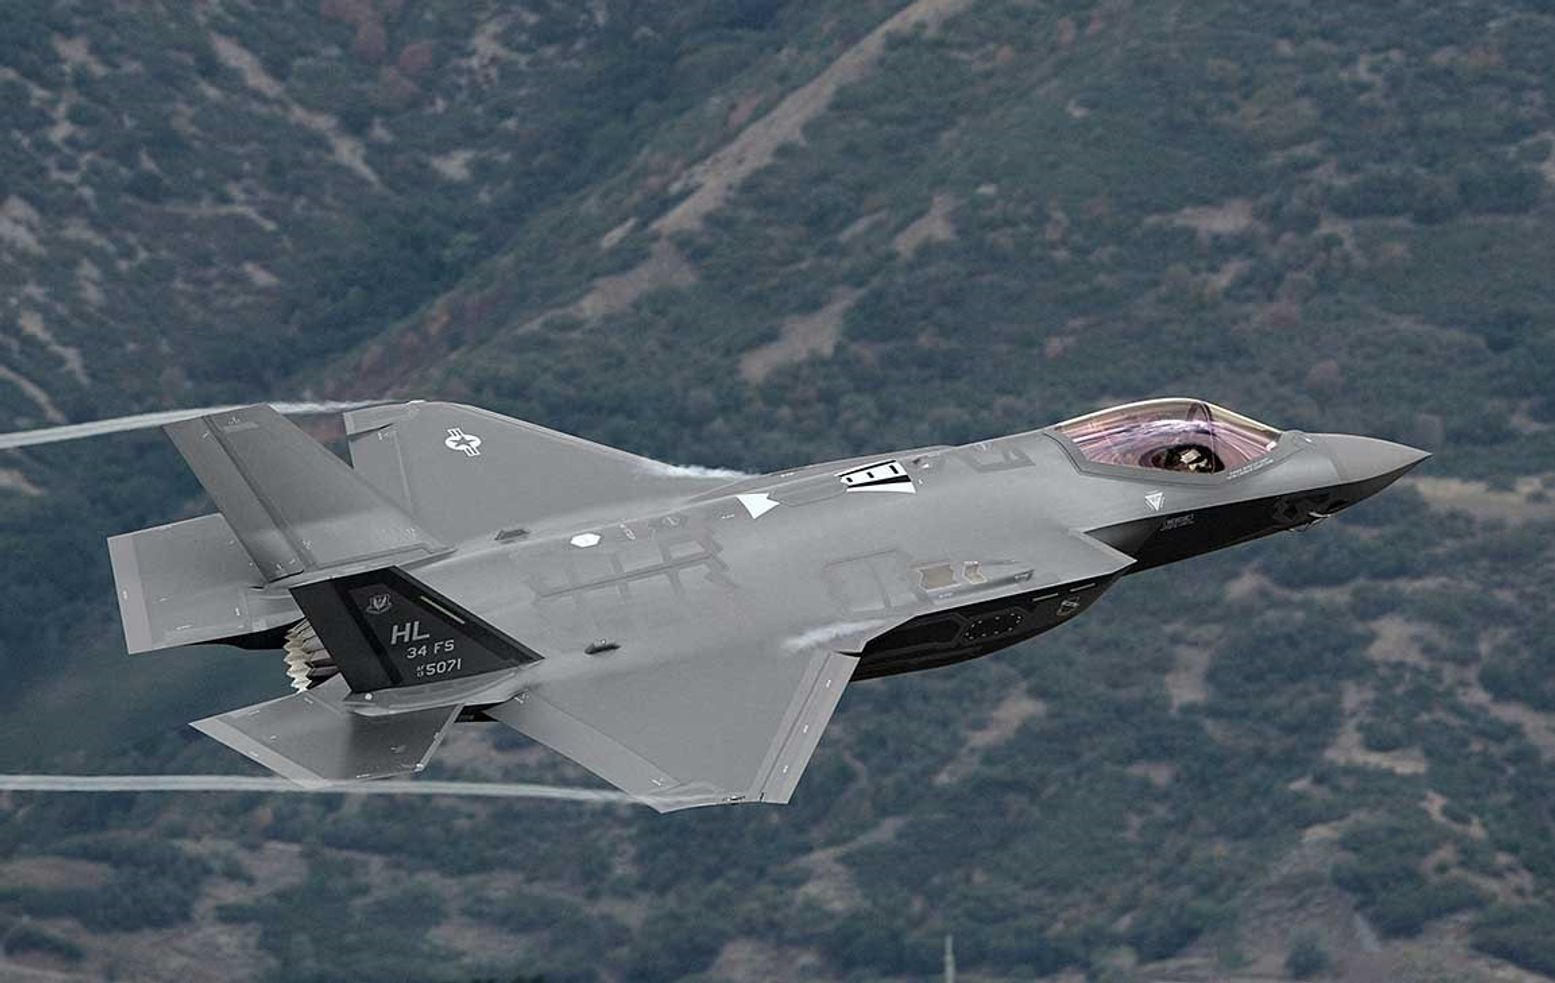 The Most Dangerous Fighter Jet on the Planet? It Might Be Israel's